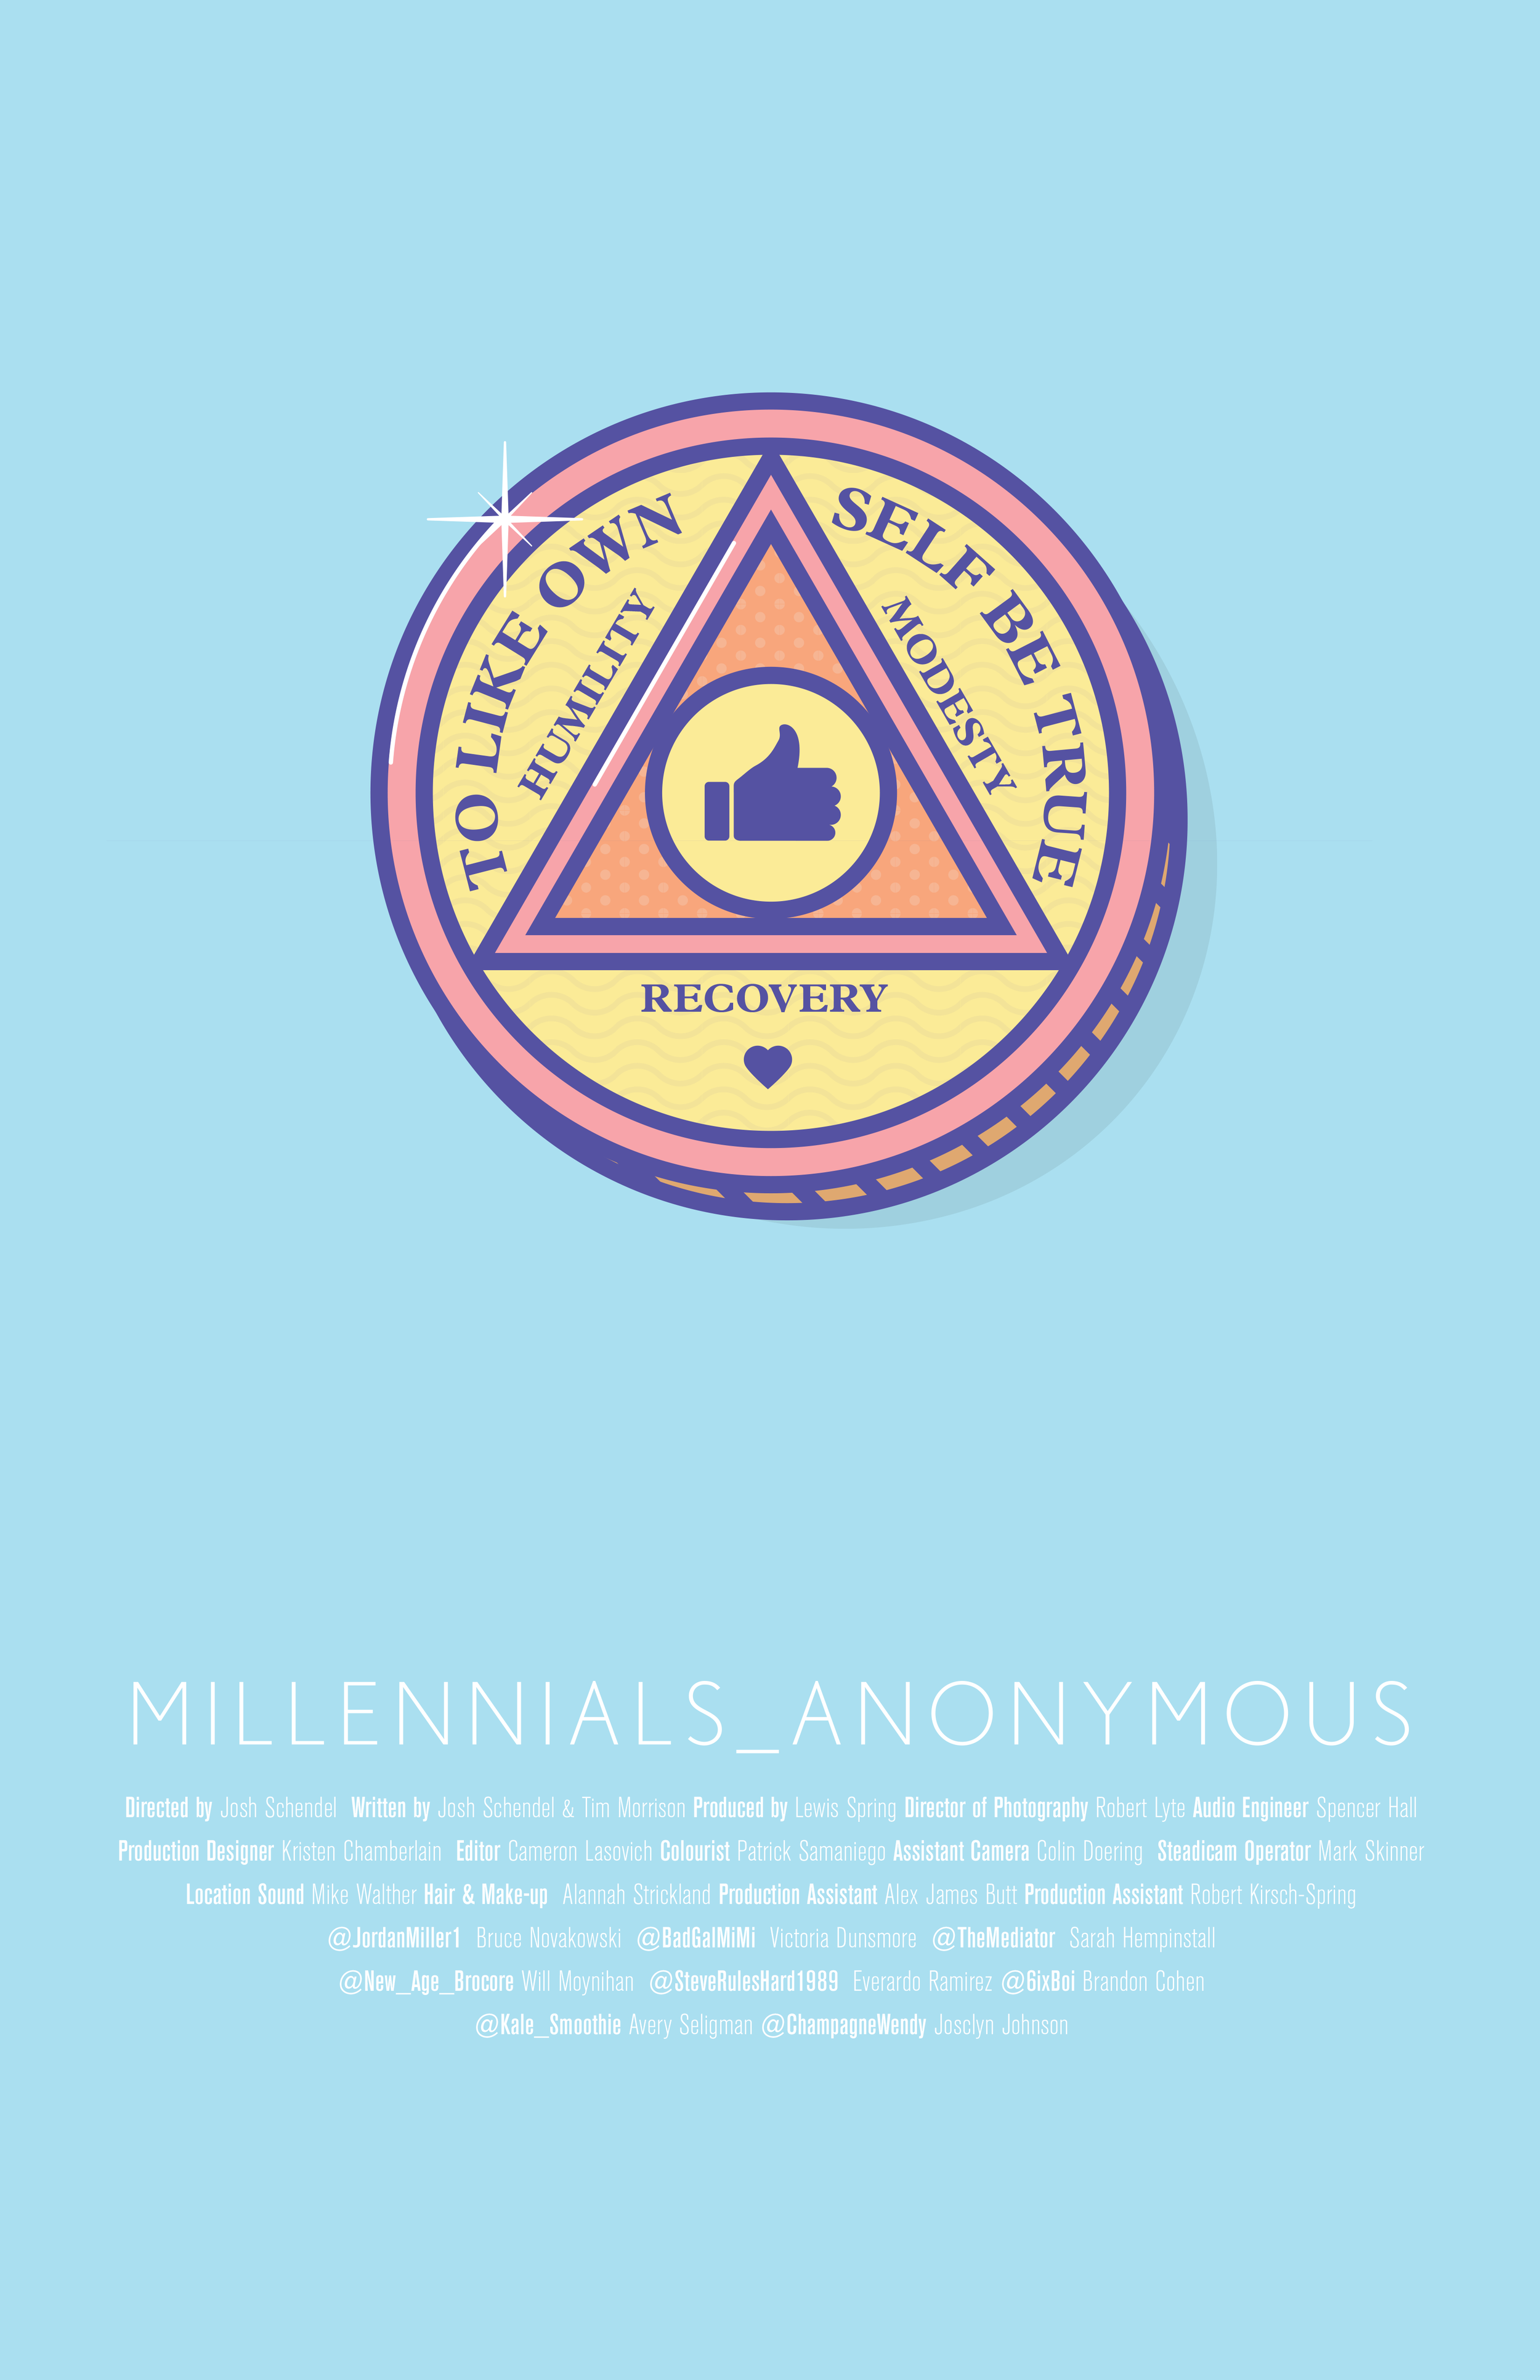 Millennials_anonymous-2-2.png